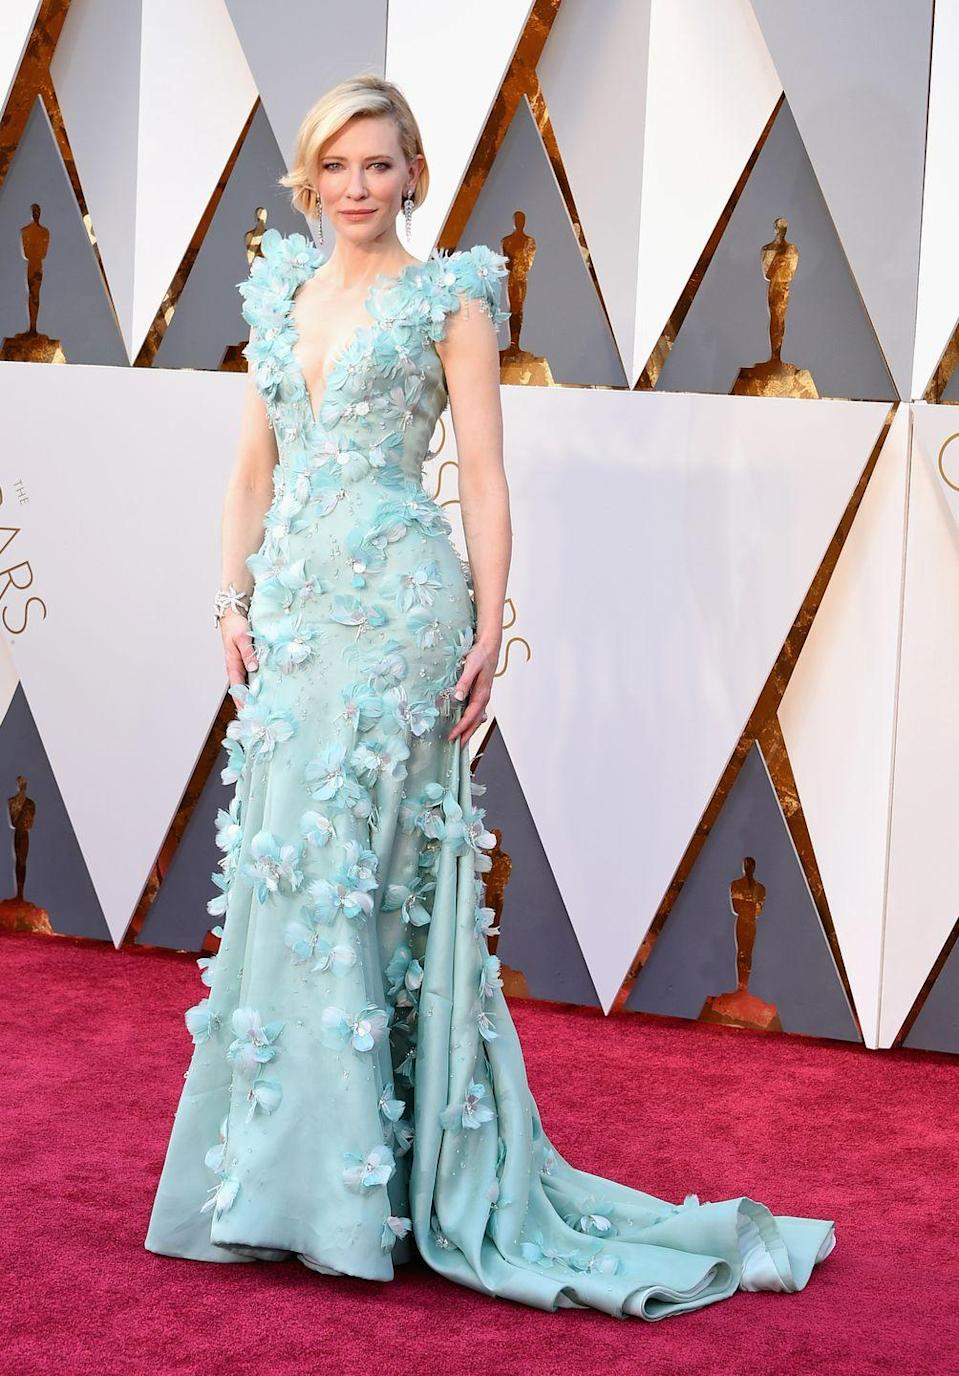 <p>Sure, Cate Banchett's Armani Prive gown might've been a little divisive, but we totally stan this gorge aqua hue, feathery details, and Swarovski crystals. It was clearly a winning look since she picked up the Best Actress Award for her work in <em>Carol</em>. </p>